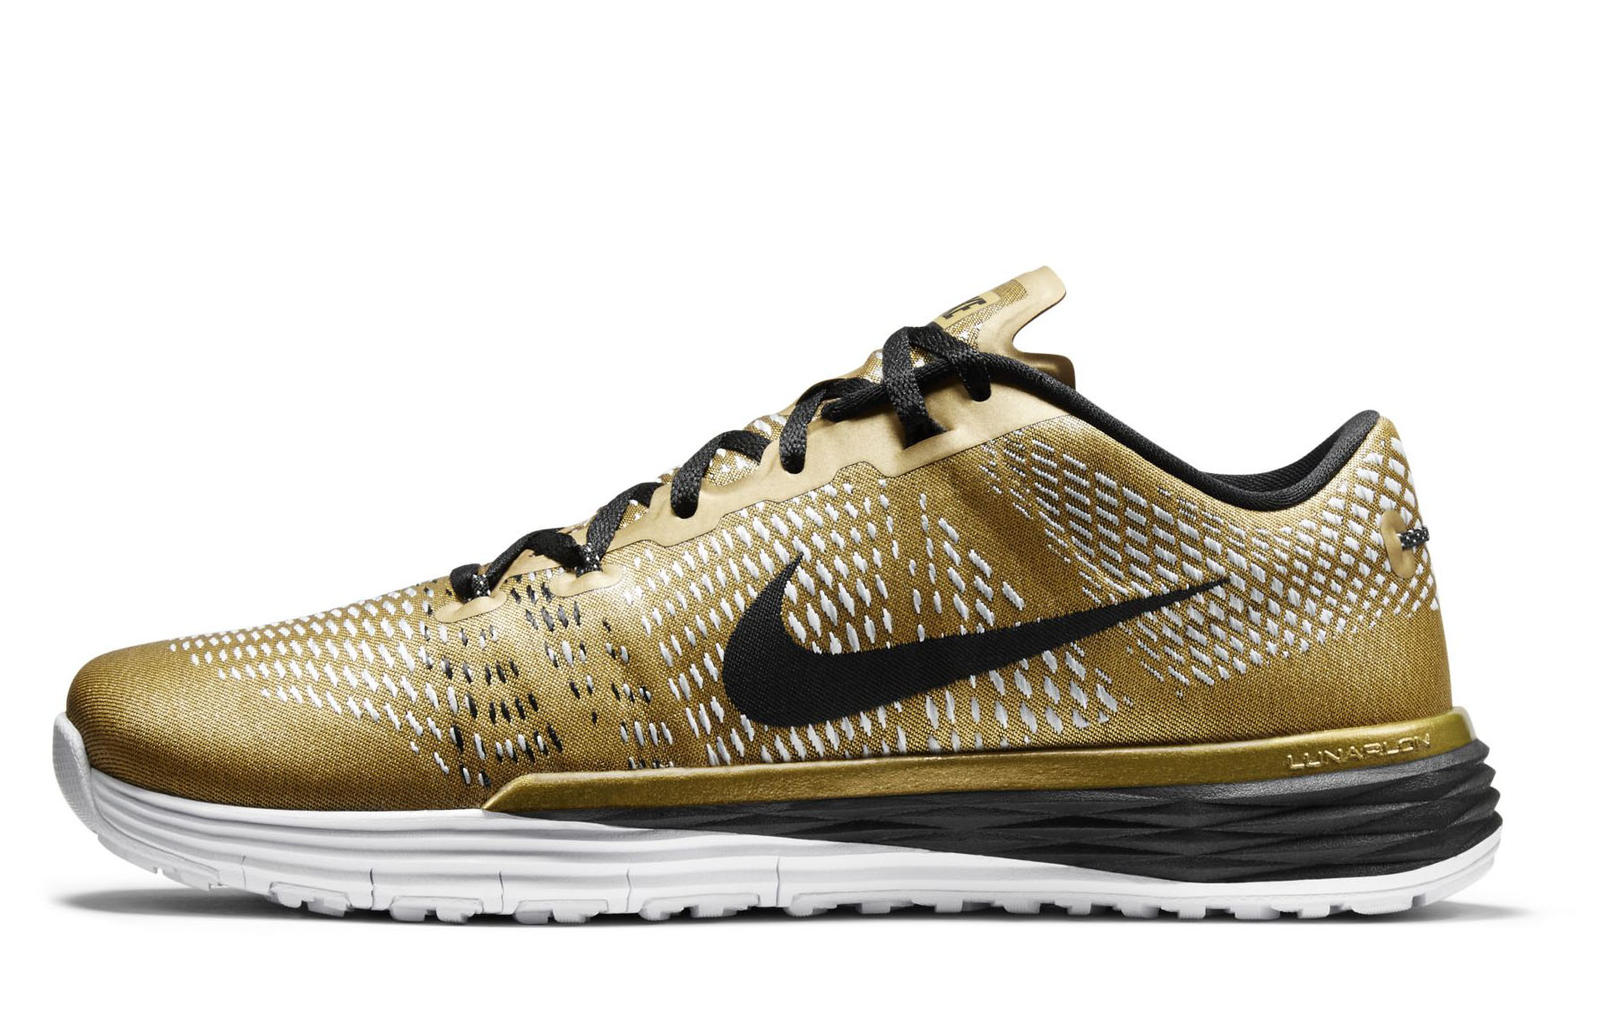 Converse Gold Cross Training Shoes